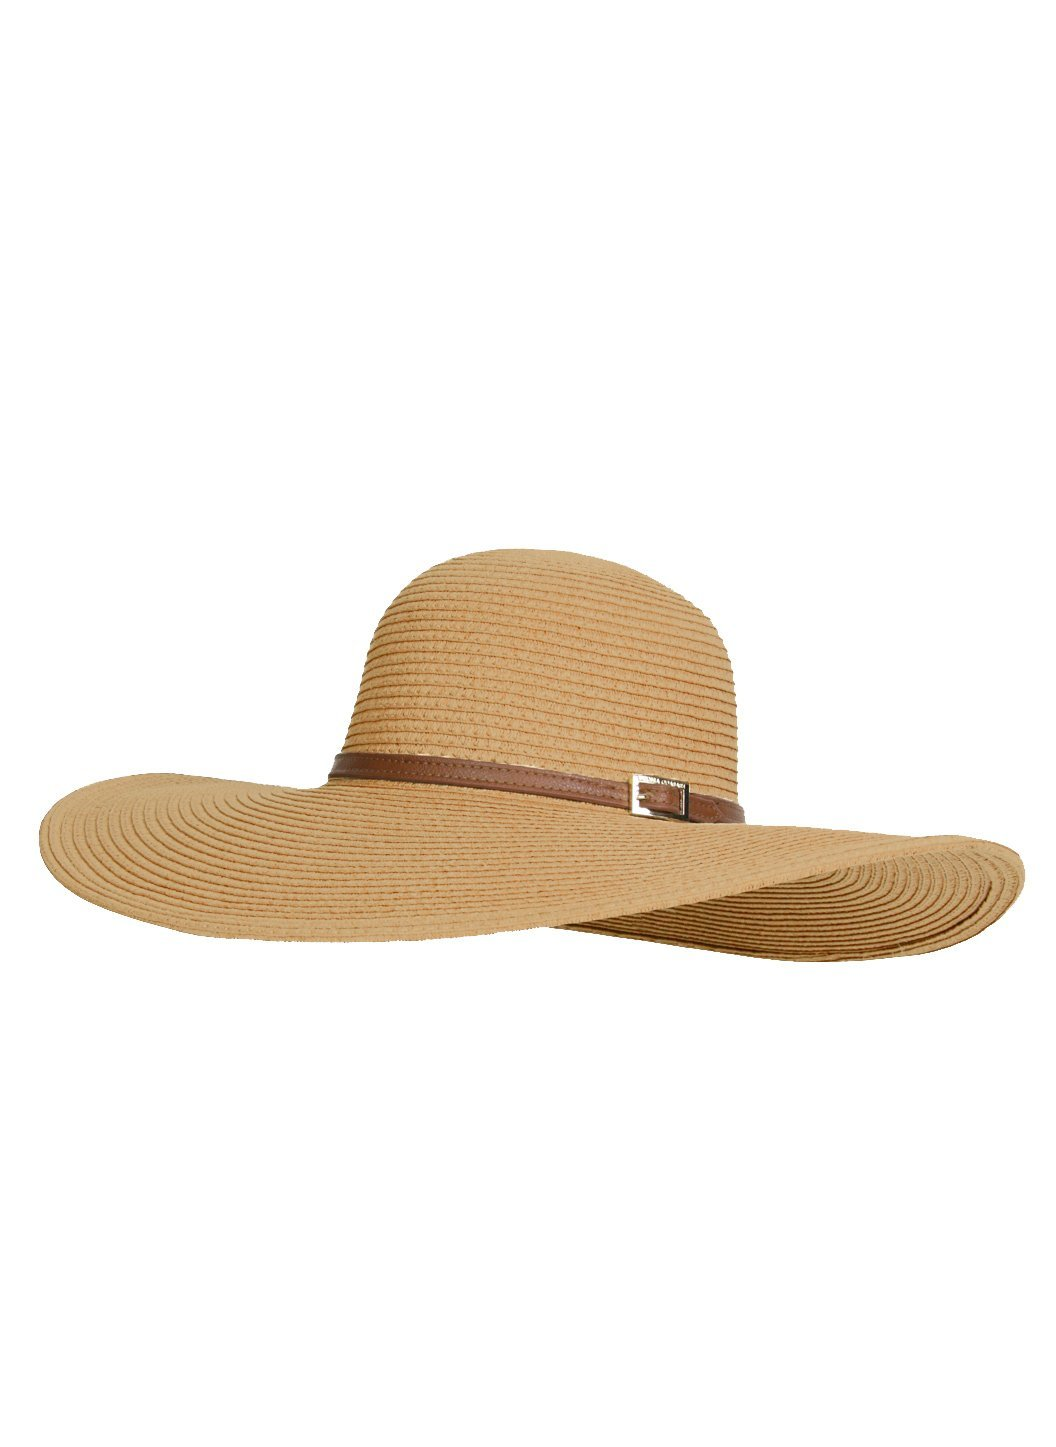 jemima wide brim beach hat beige 2019